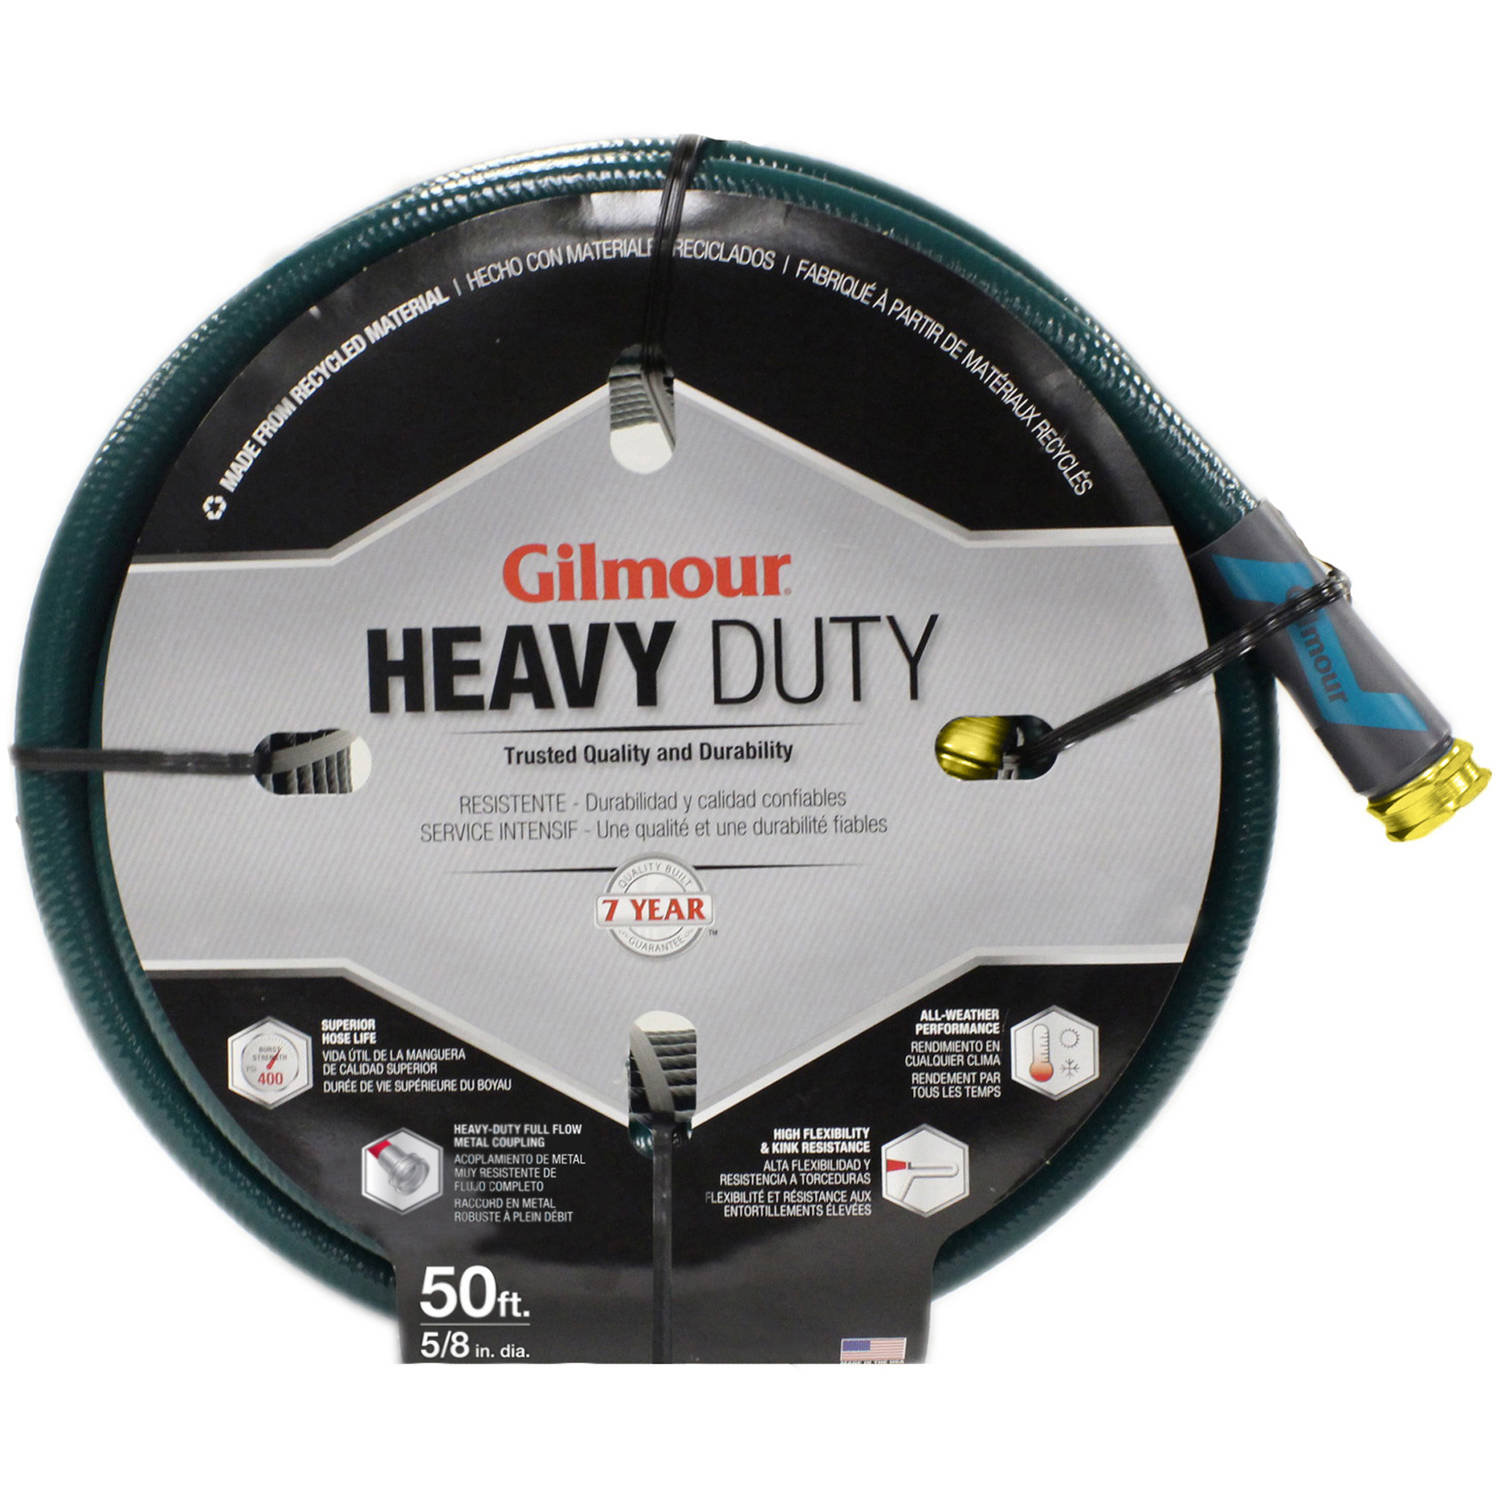 Gilmour 26058050 50' 5-Ply Heavy Duty Hose